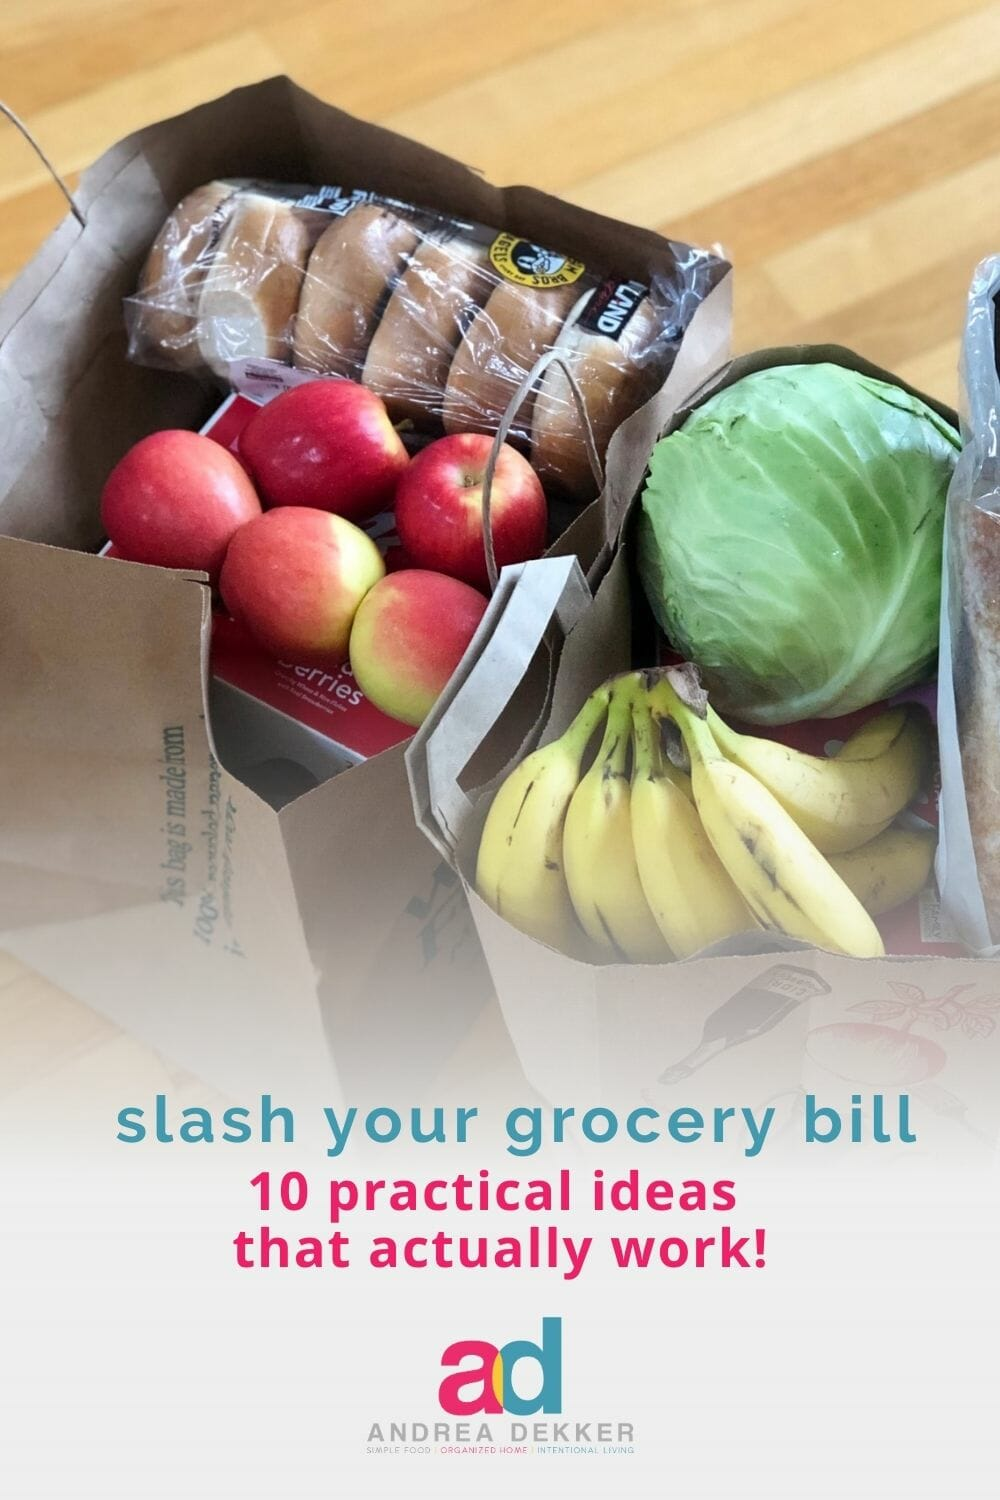 Stop clipping coupons and shopping at multiple stores. These practical tips will slash your grocery bill THIS WEEK… and save you a bunch of time and stress too! via @andreadekker